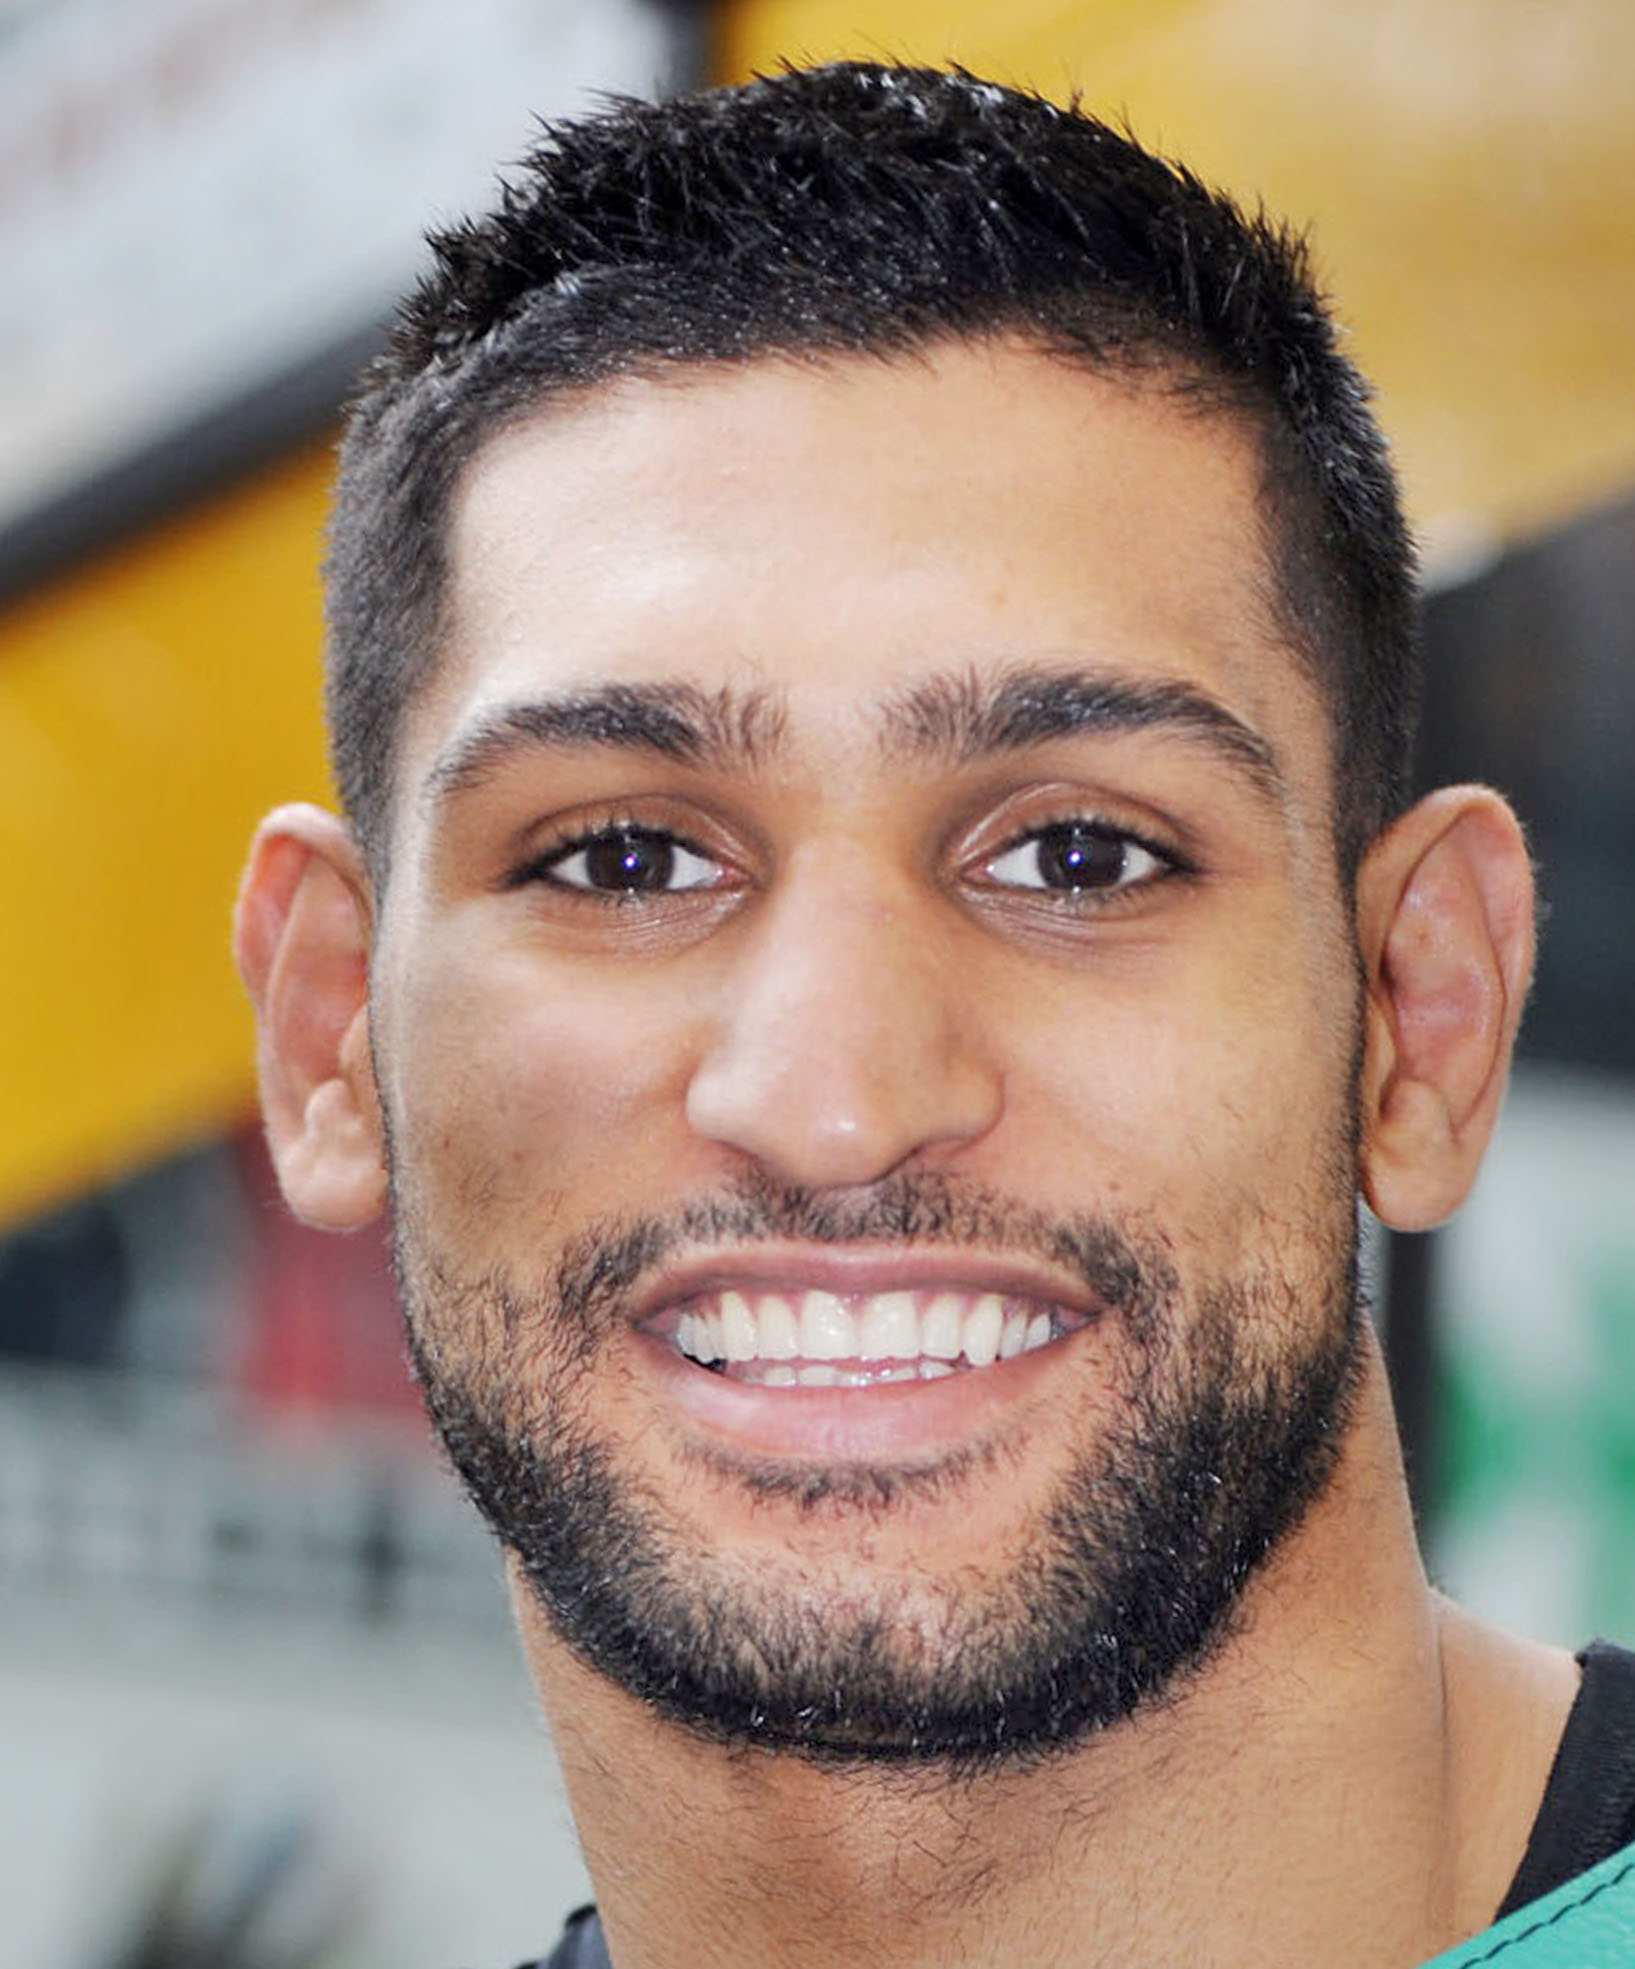 Amir Khan will face no further action over alleged street attack